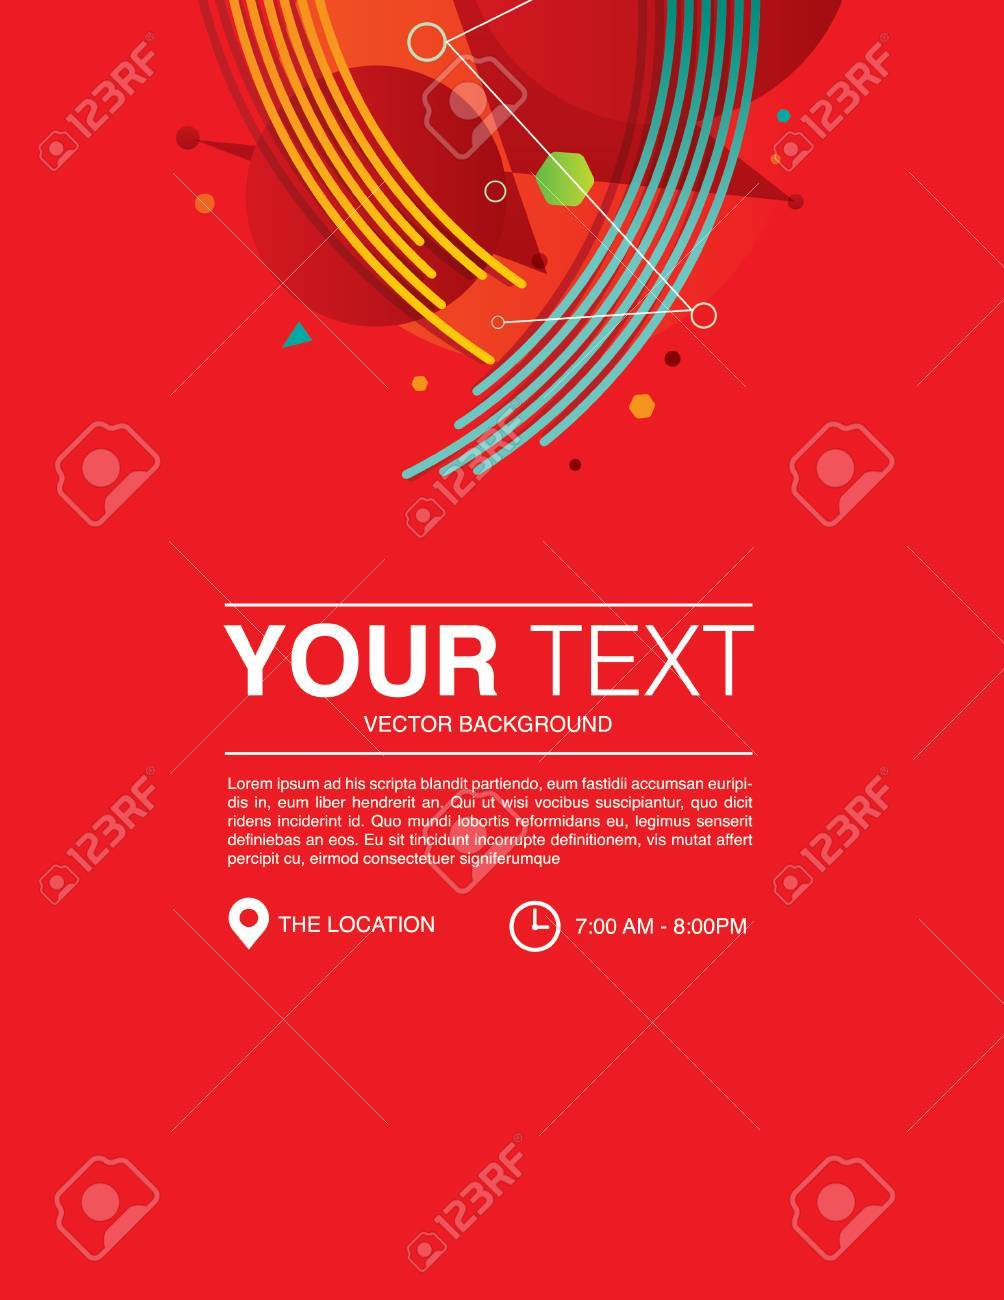 Template Design Background Red